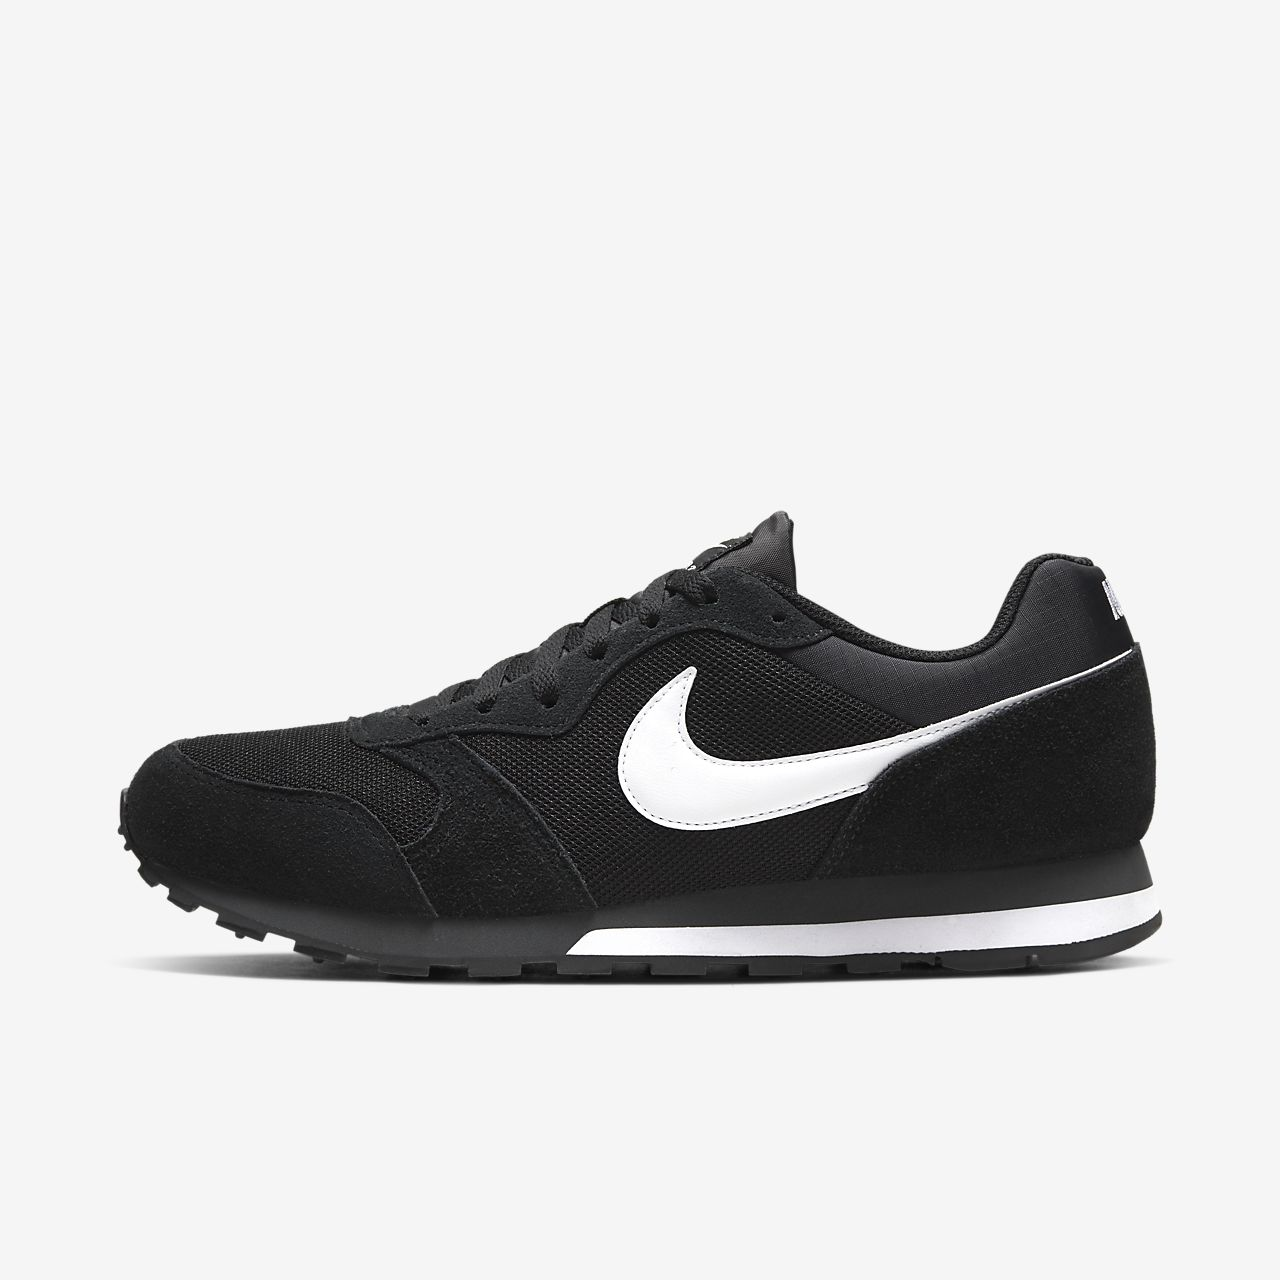 brand new dacac aa610 A buon mercato NIKE MD RUNNER 2 749794410